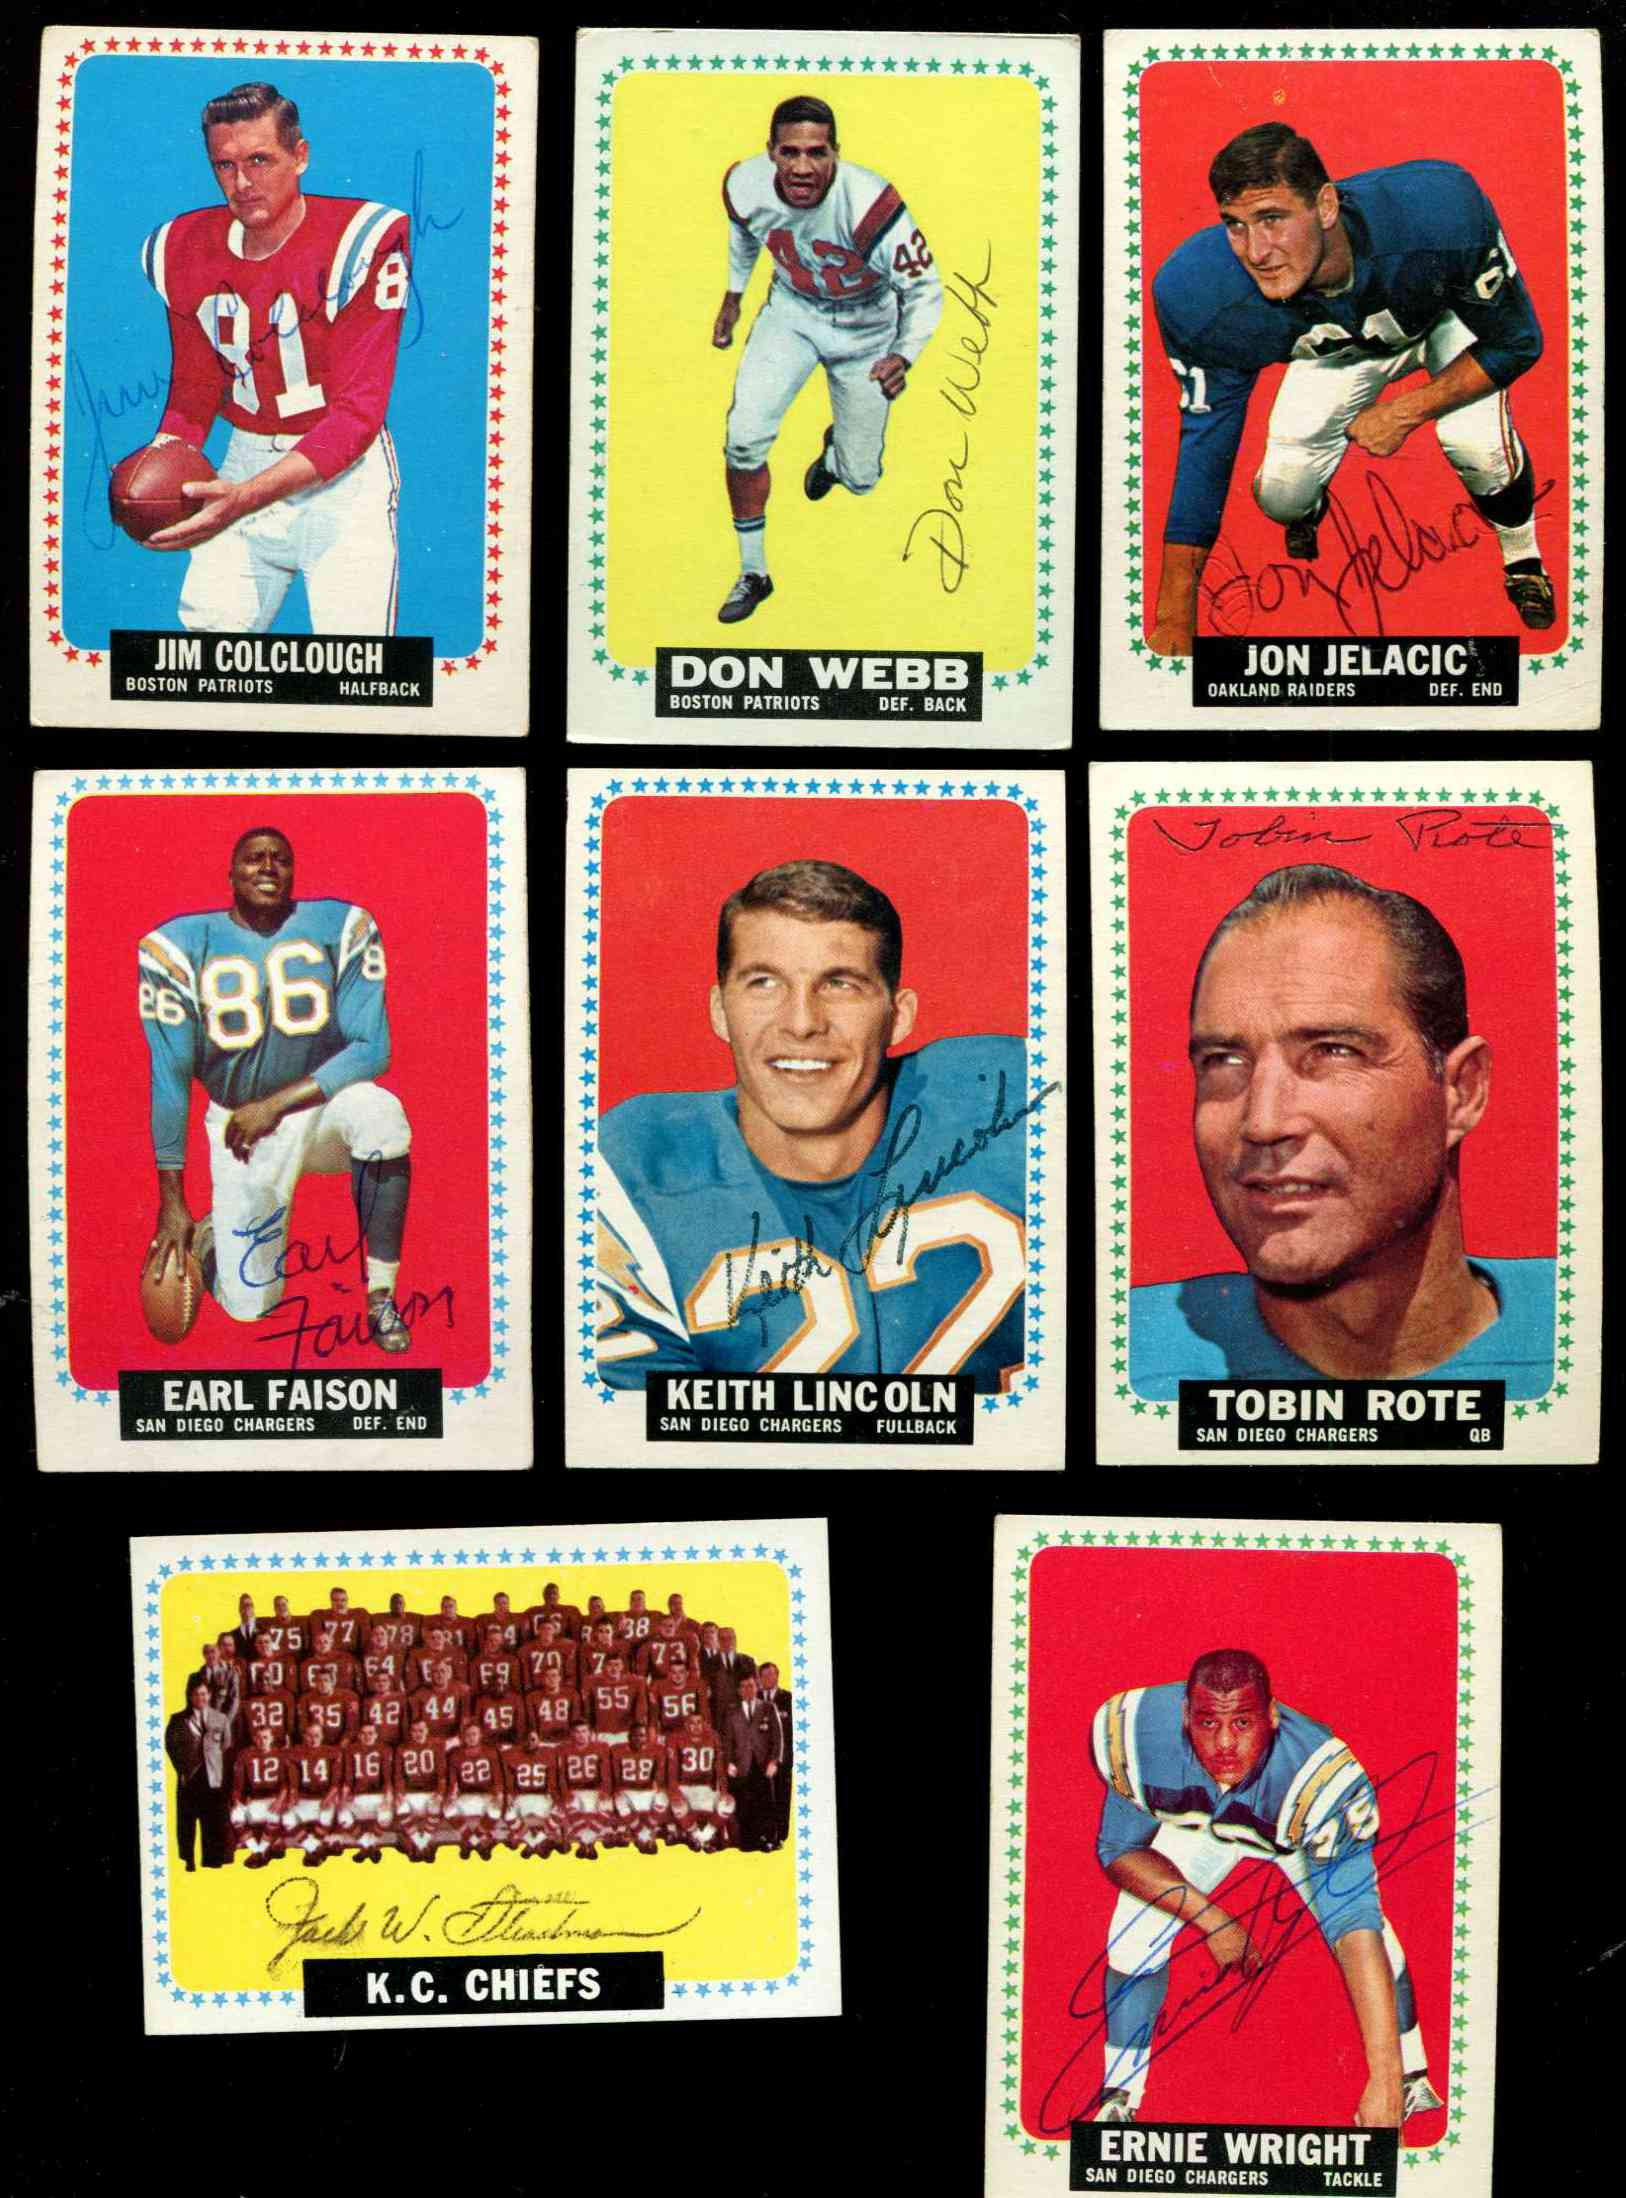 1964 Topps FB #171 Tobin Rote SHORT PRINT AUTOGRAPHED w/GAI LOA (Chargers) Football cards value